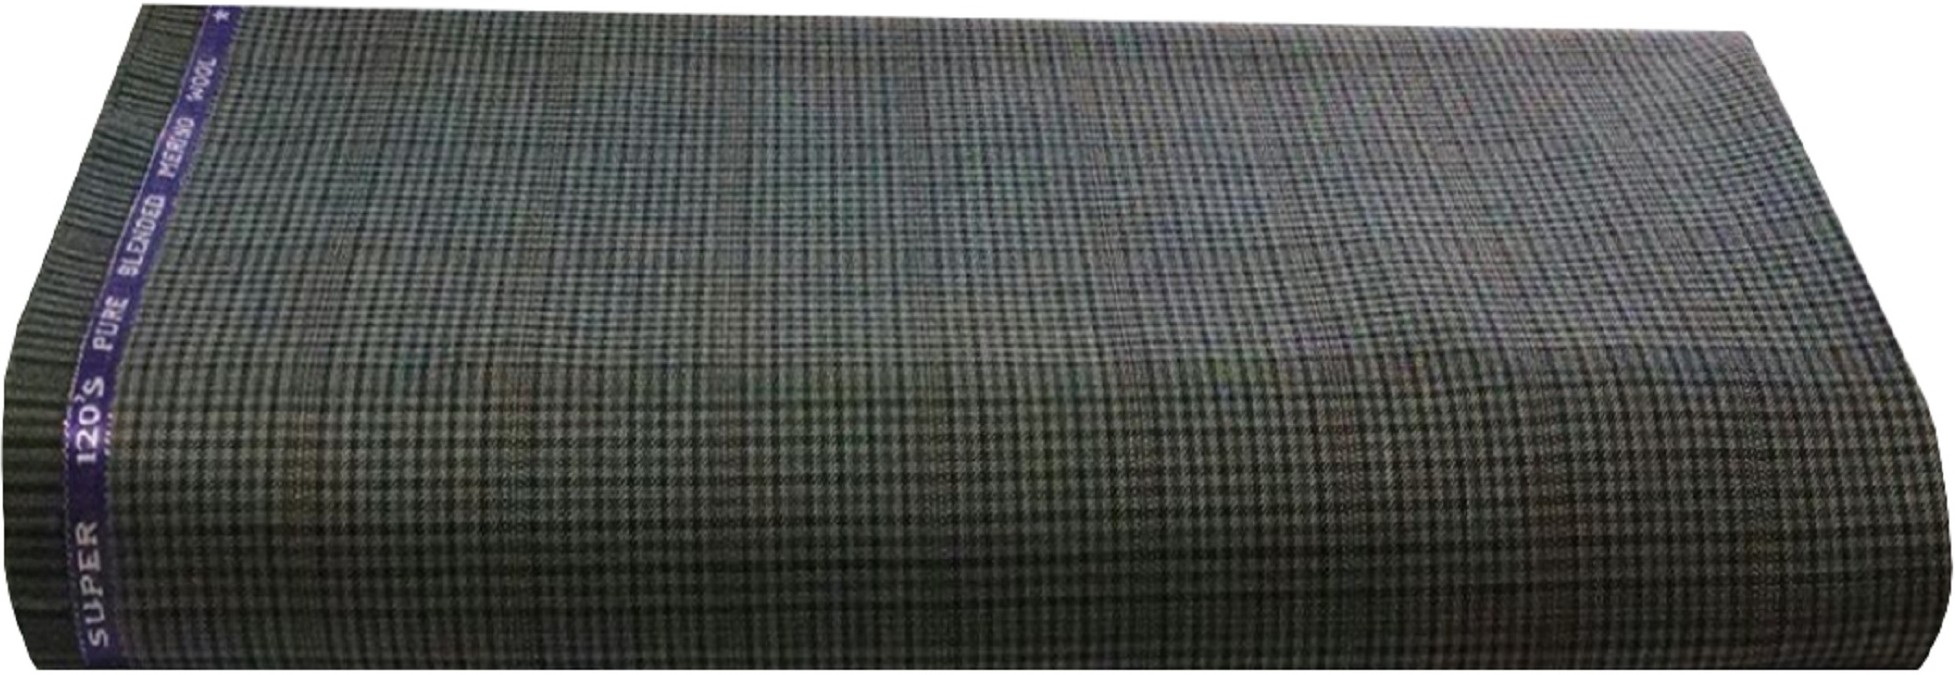 Ivo Gini Wool Checkered Salwar Suit Dupatta Material(Un-stitched)